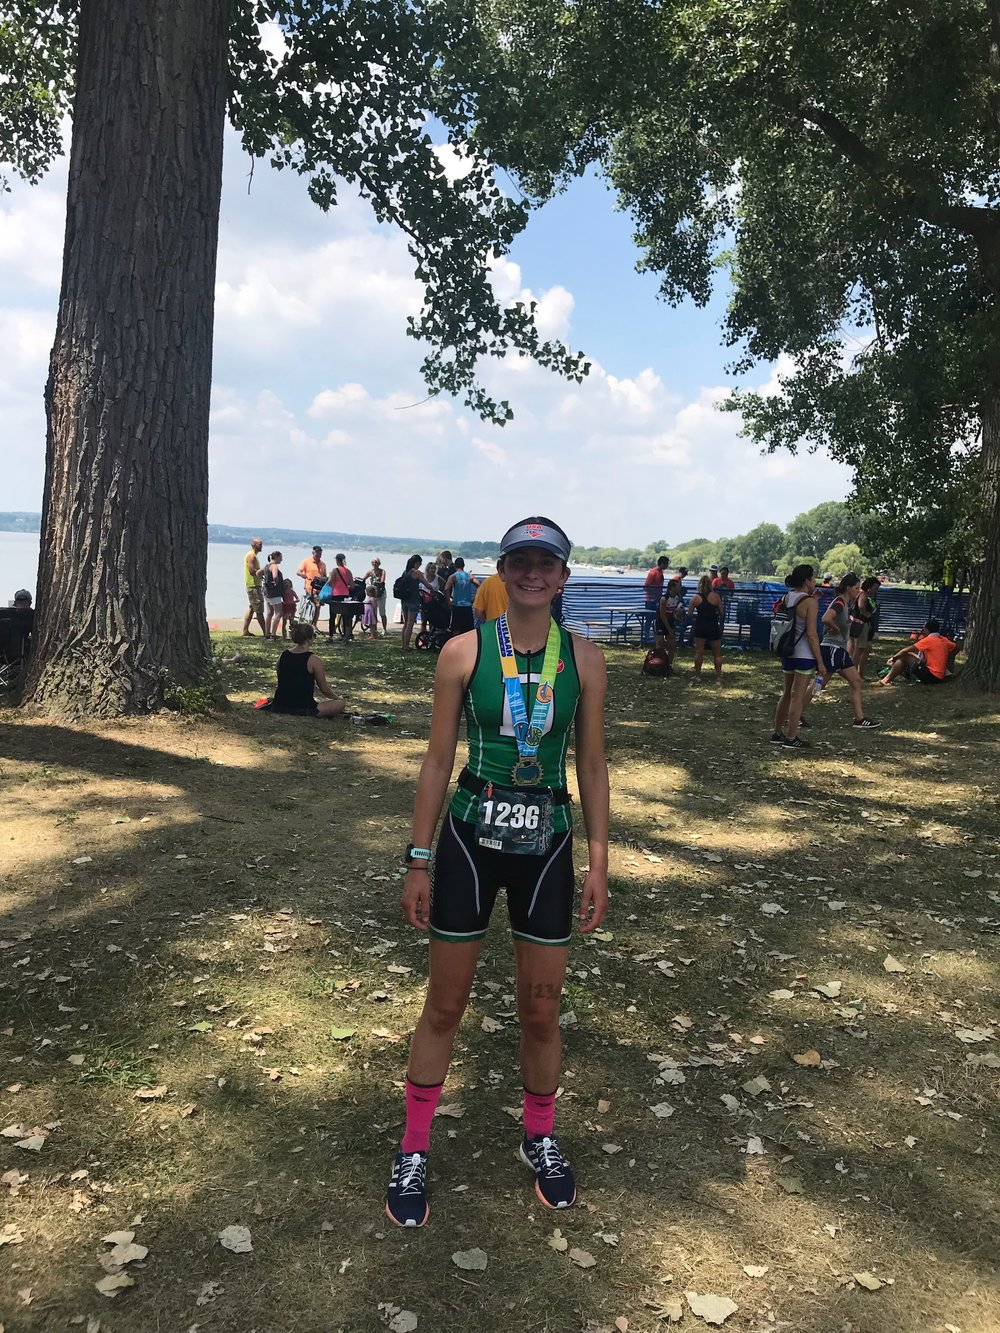 Katie, 4th overall women's finisher, at the finish line of the 2018 Musselman Triathlon.